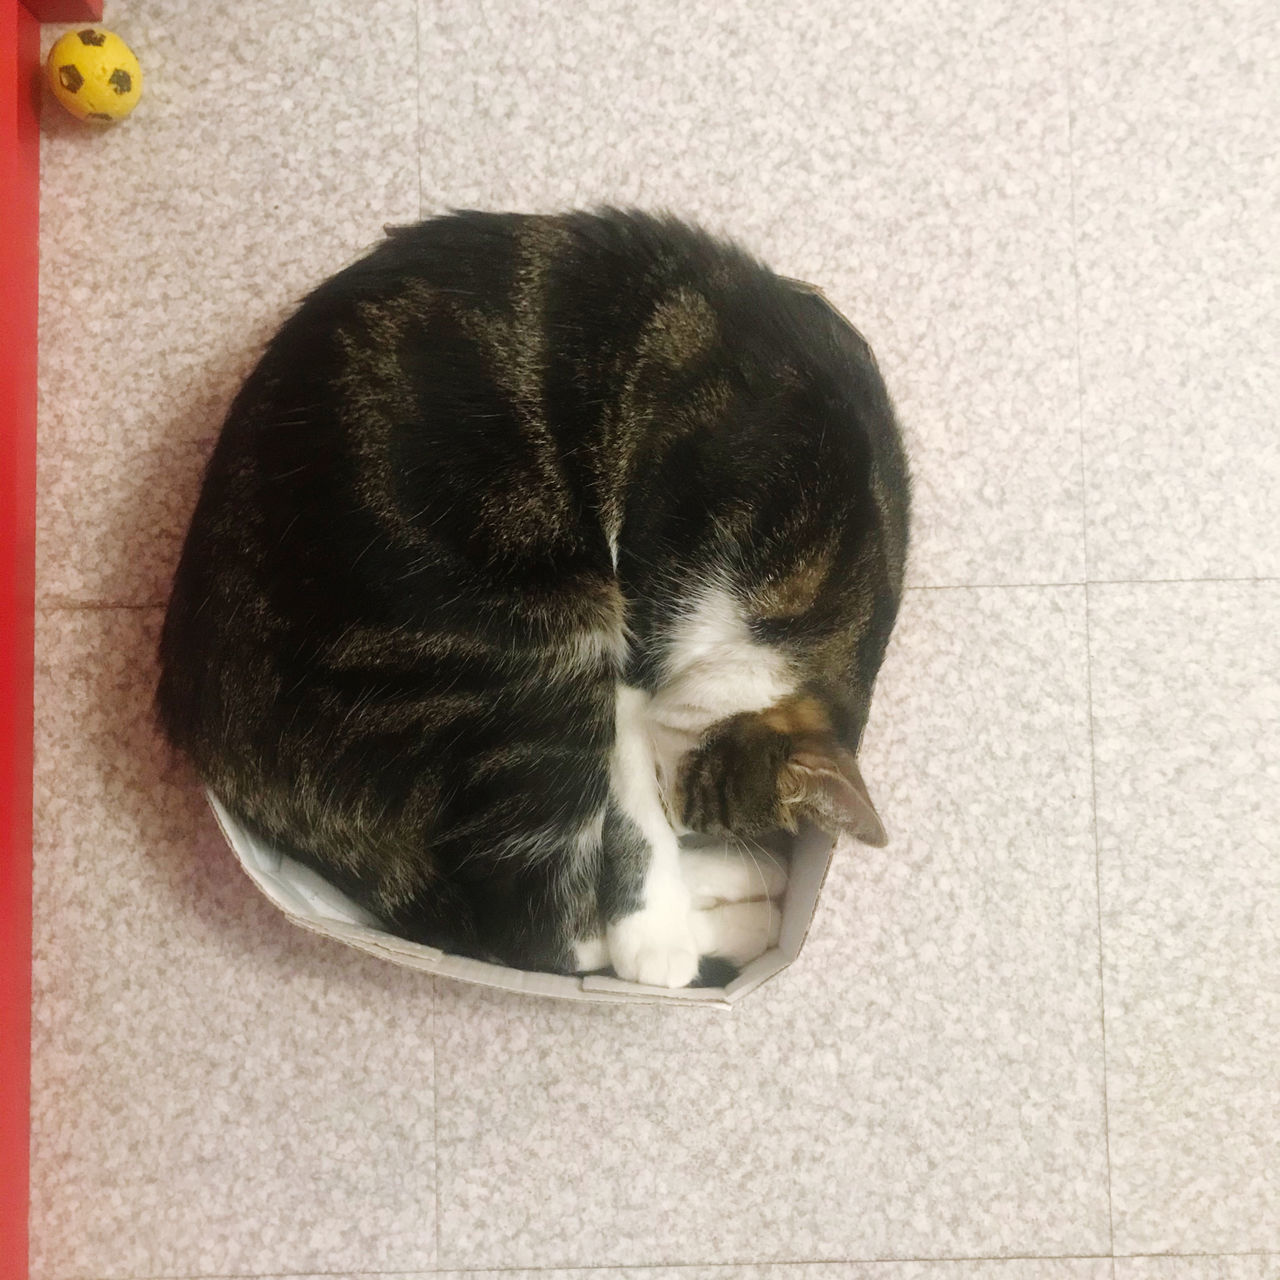 HIGH ANGLE VIEW OF CAT SLEEPING ON CARPET